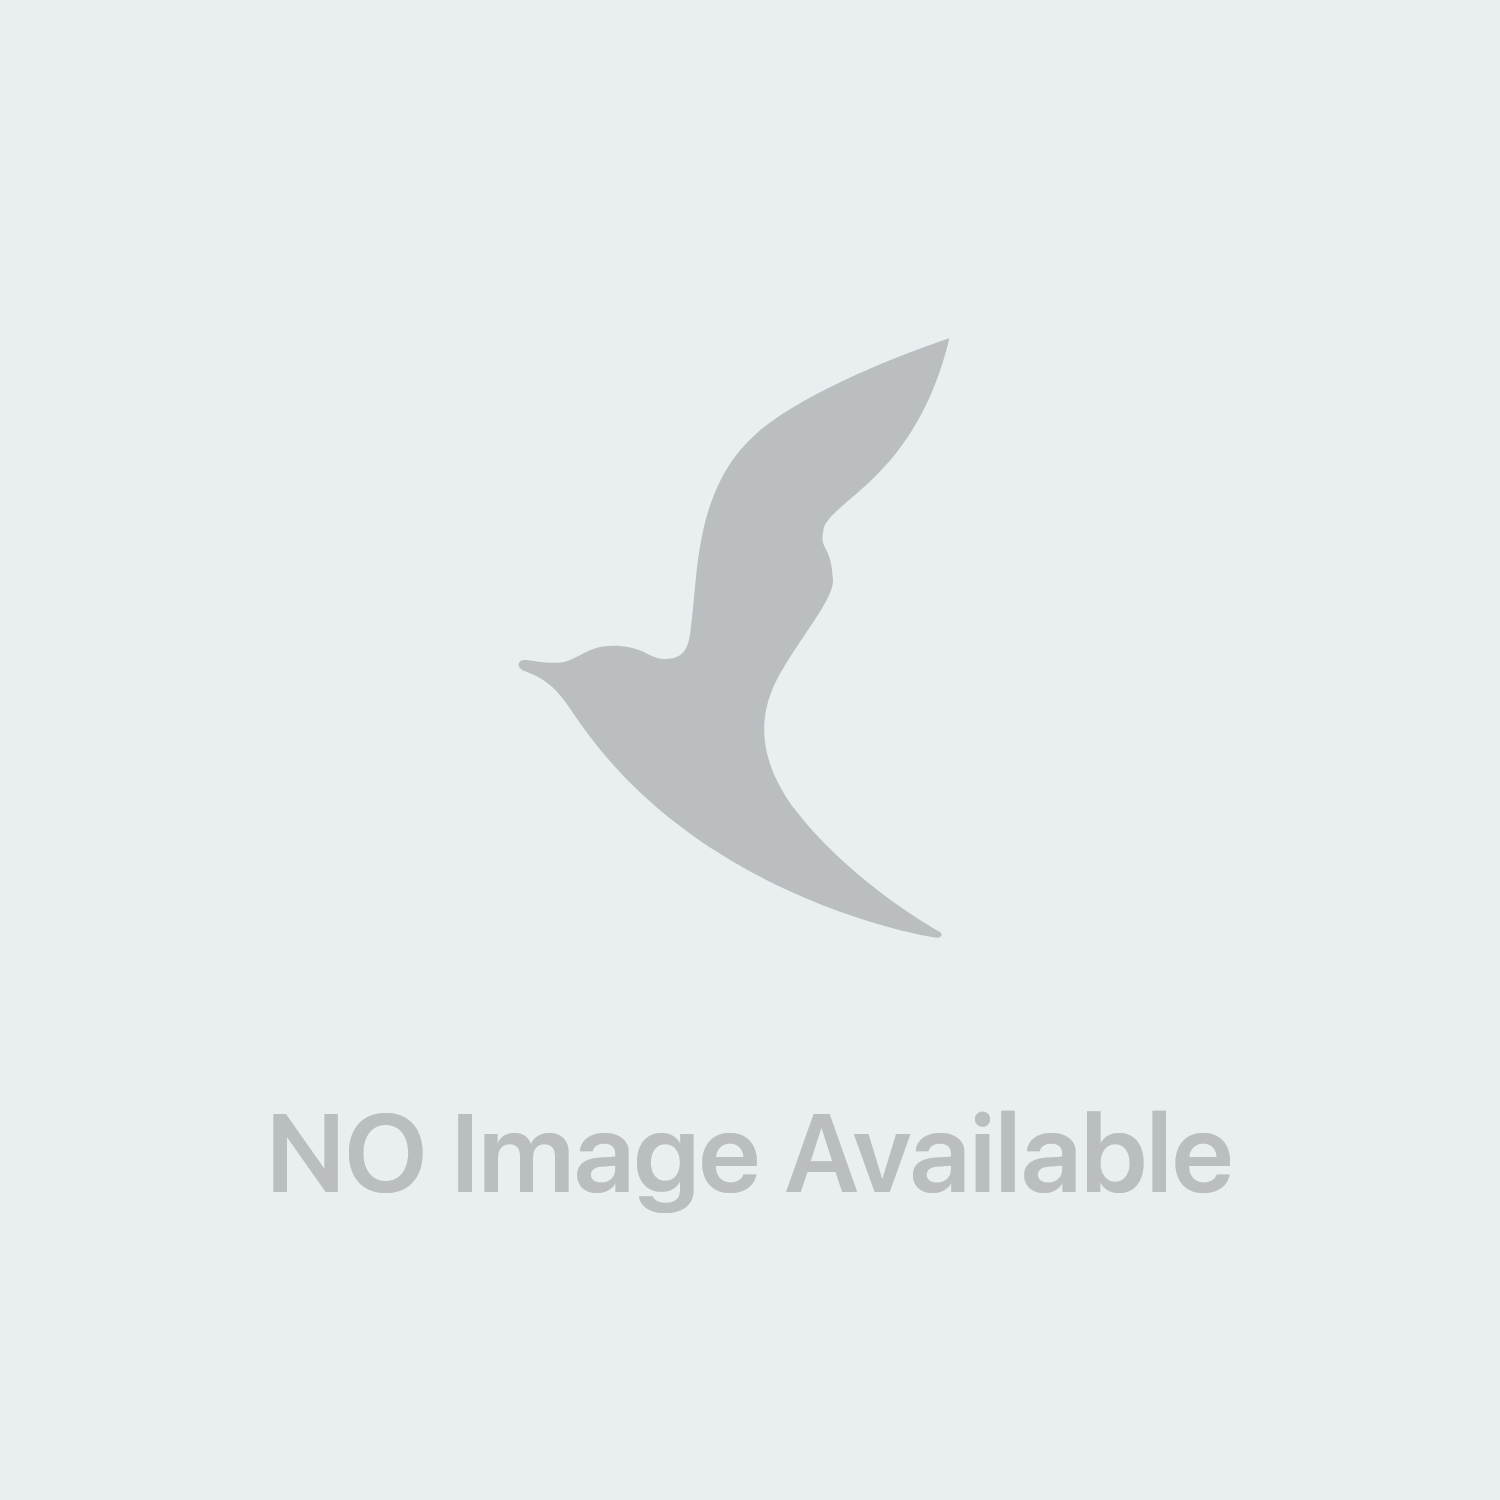 Guna Fiori di Bach Resource Confidence Autostima e Fiducia Gocce 20 Ml